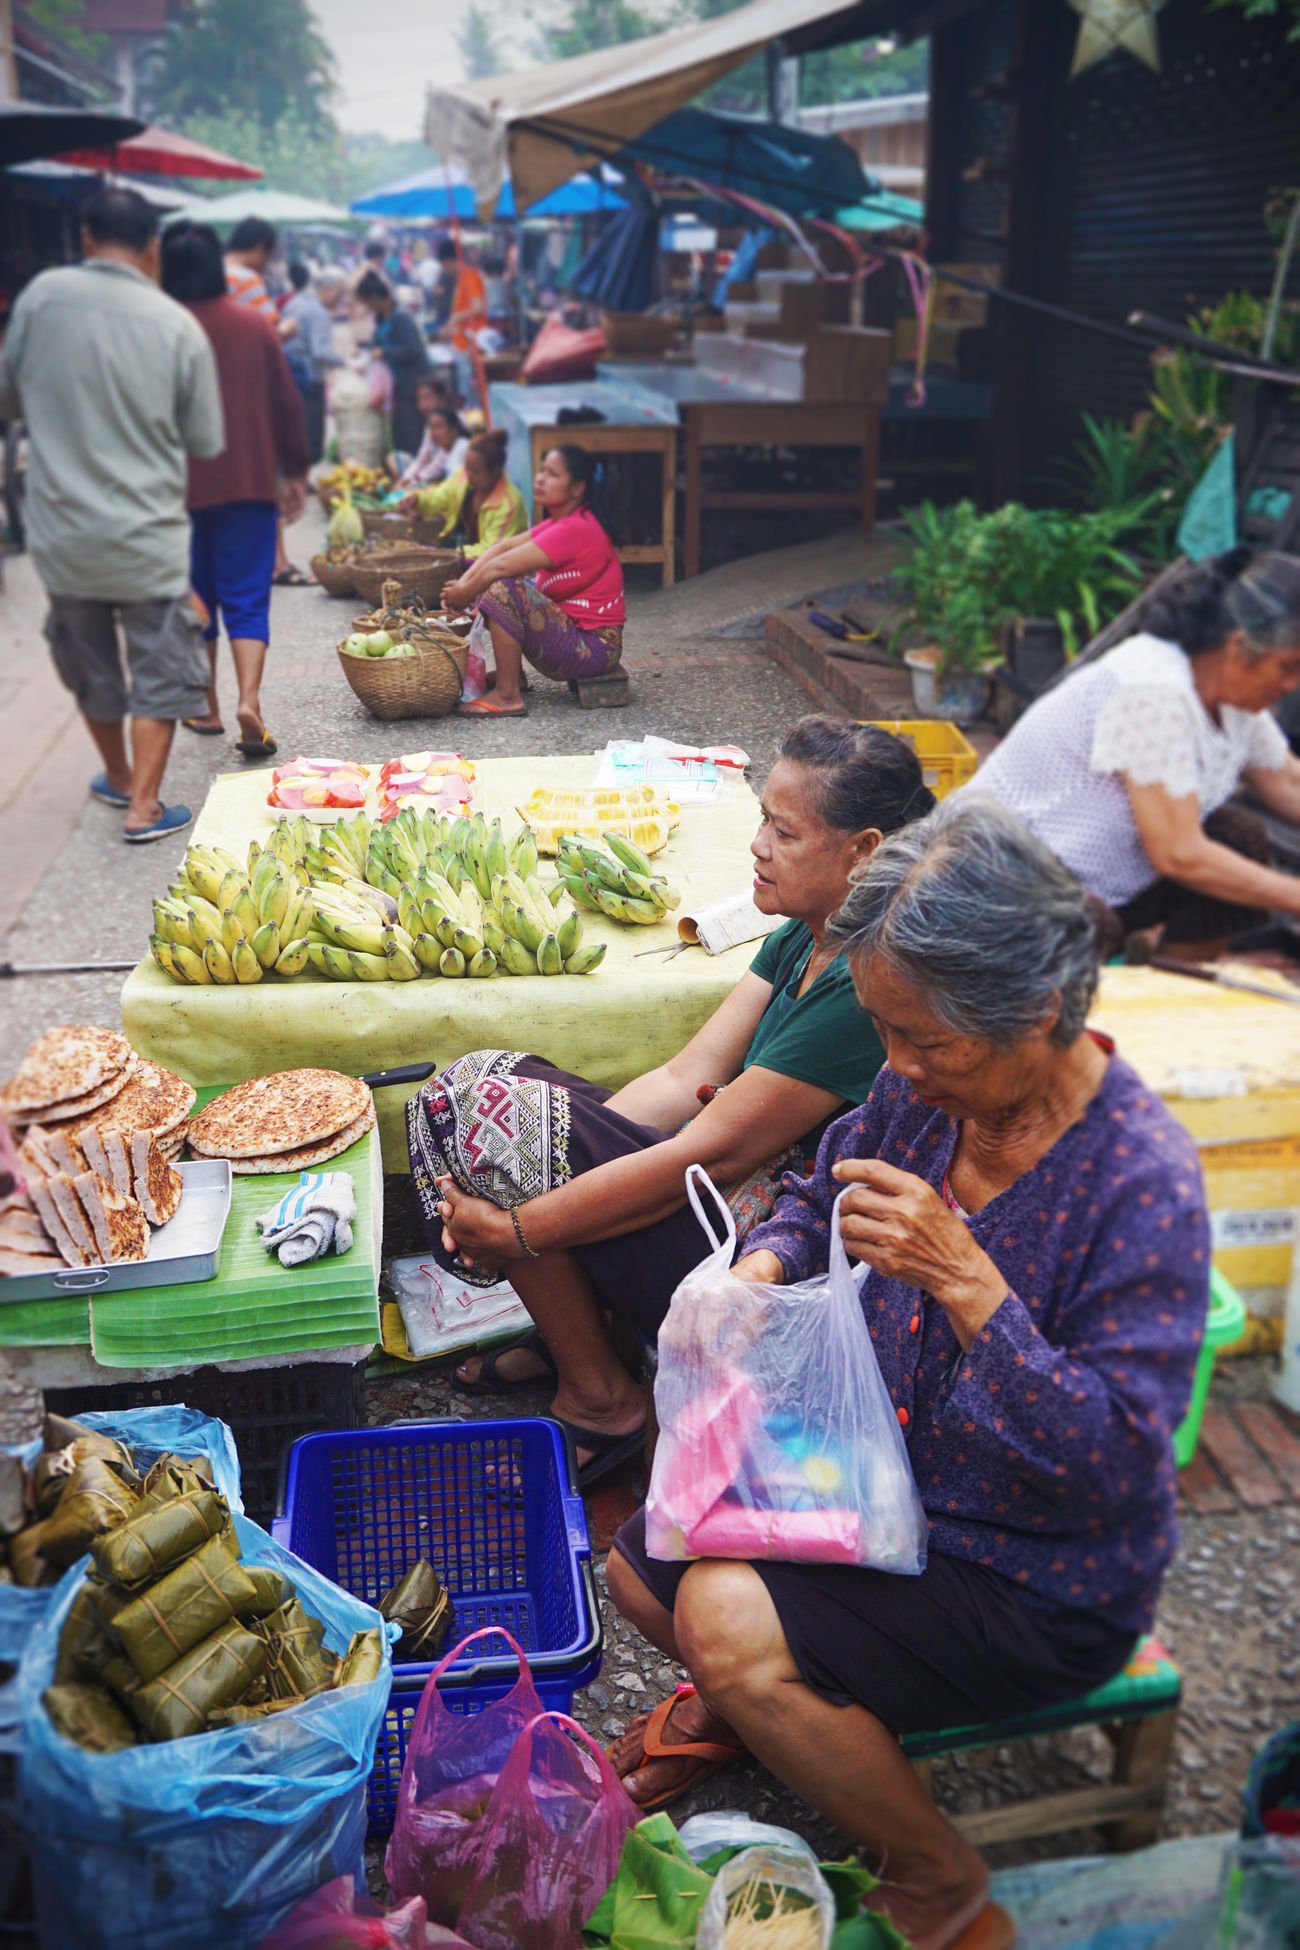 2017 Basket Day Farmer Market For Sale Laos Luang Phabang Luang Prabang Market Market Stall Market Vendor Outdoors Real People Selling Small Business Vegetable ラオス ルアンパバーン 朝市